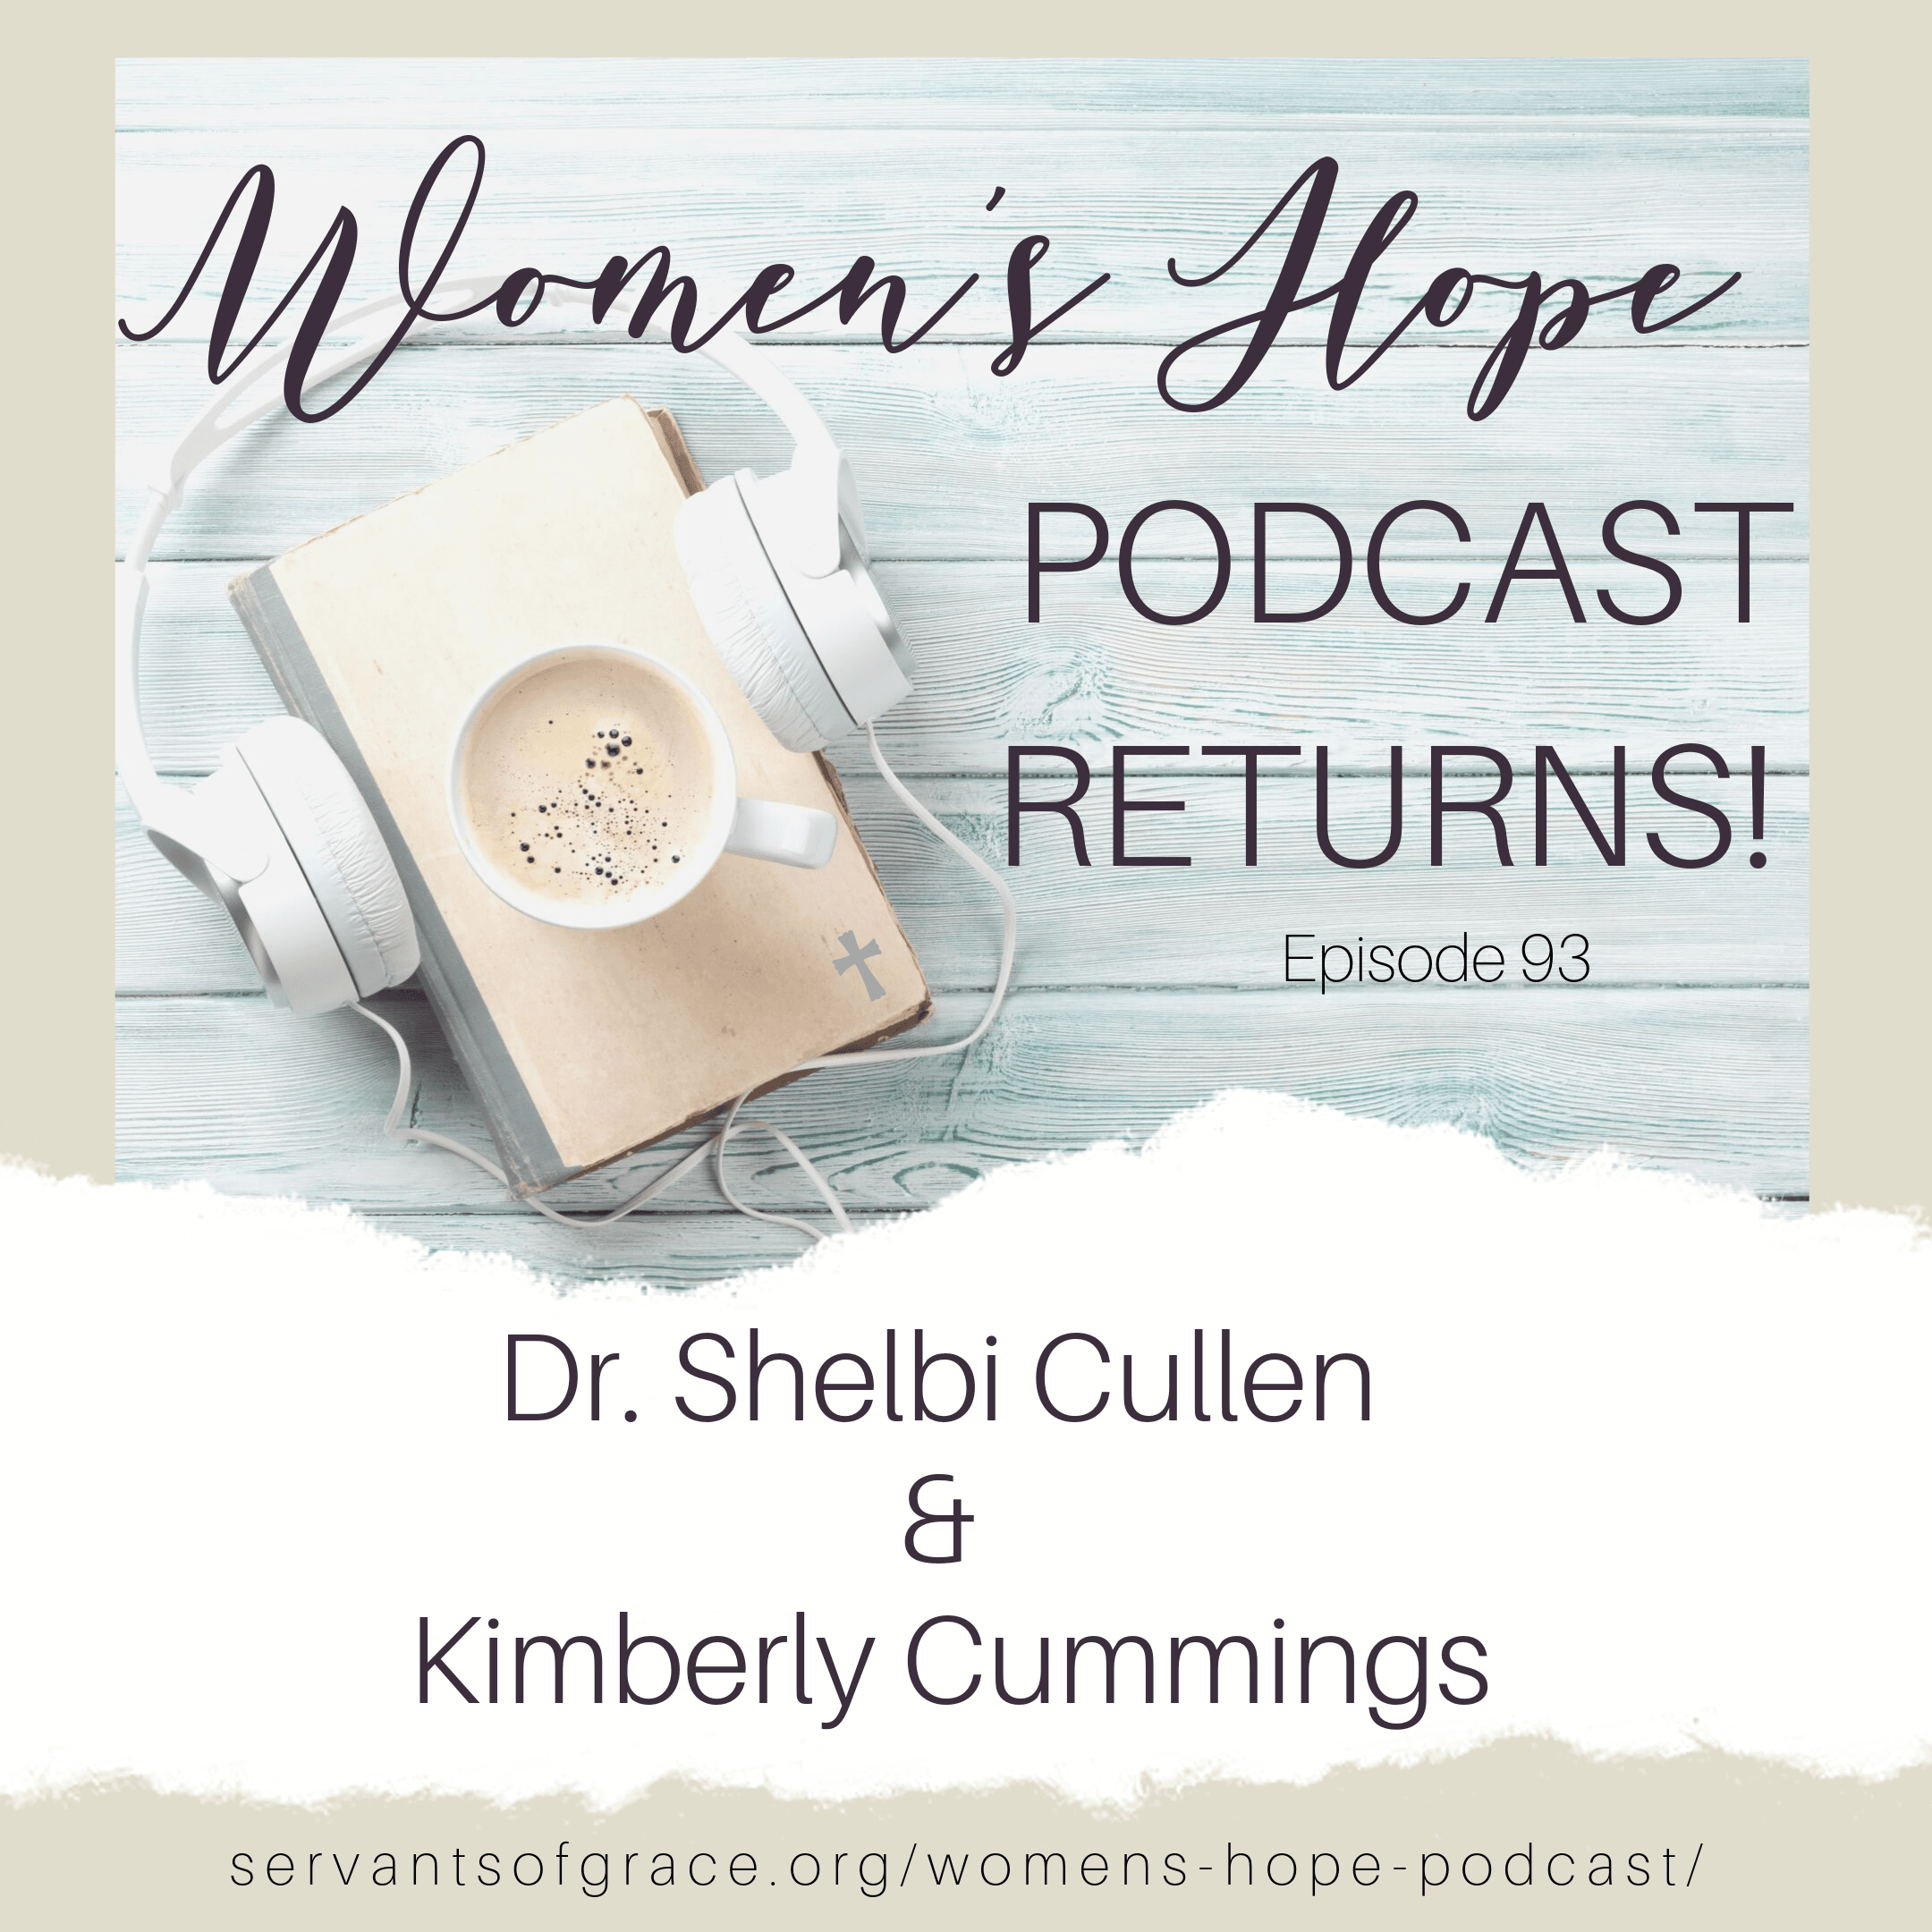 Women's Hope Podcast Returns!